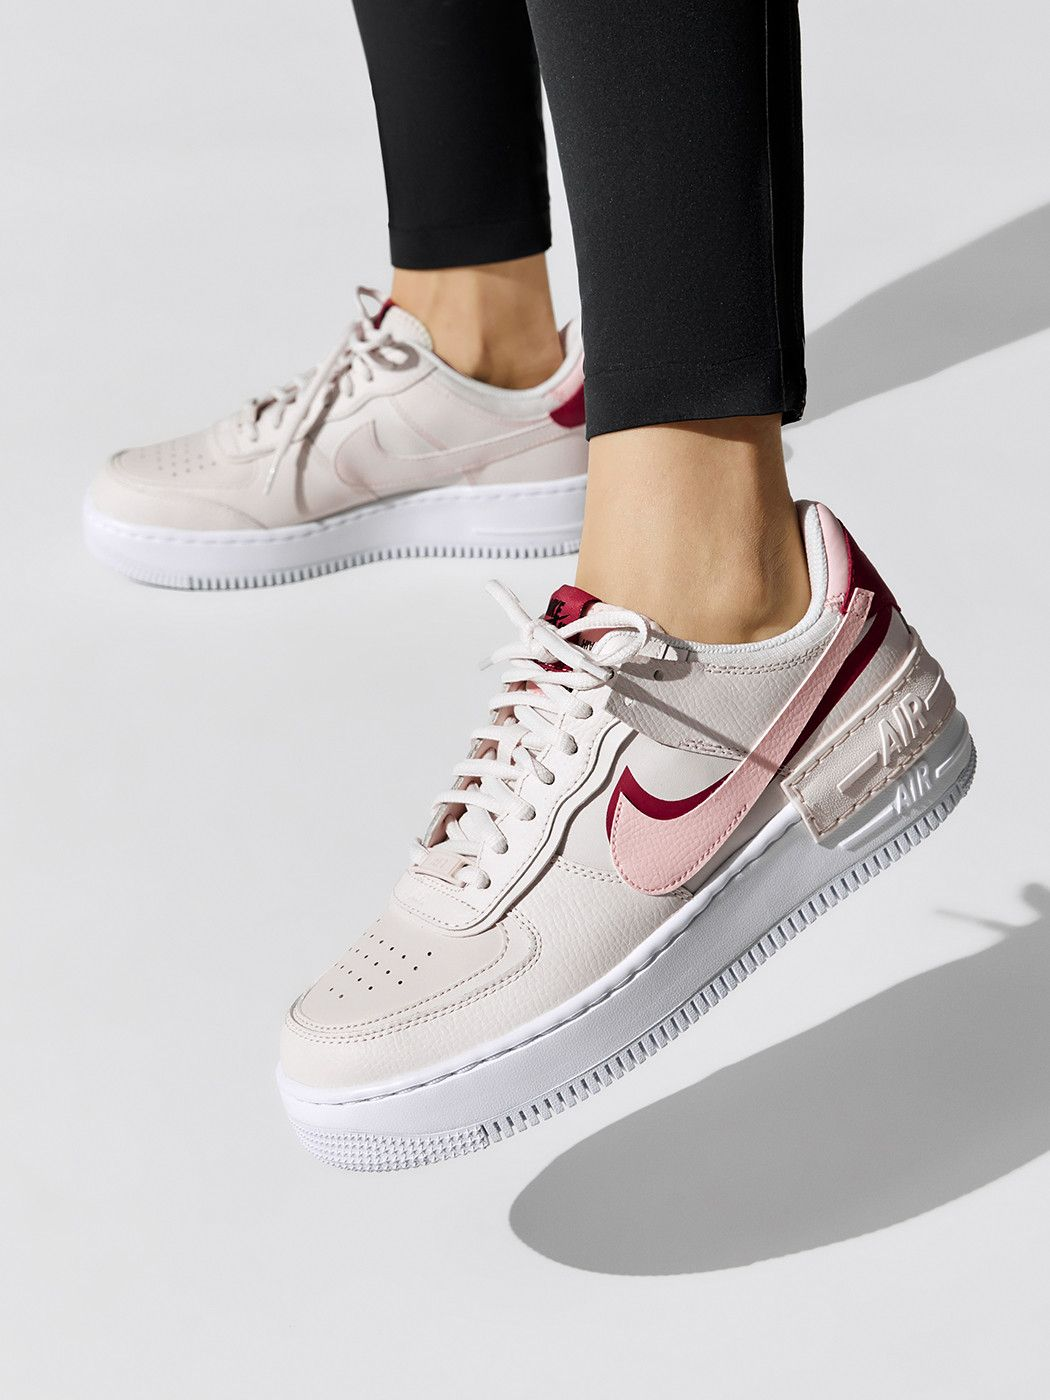 Nike Af1 Shadow in Phantomecho Pink gym Red | Sneakers